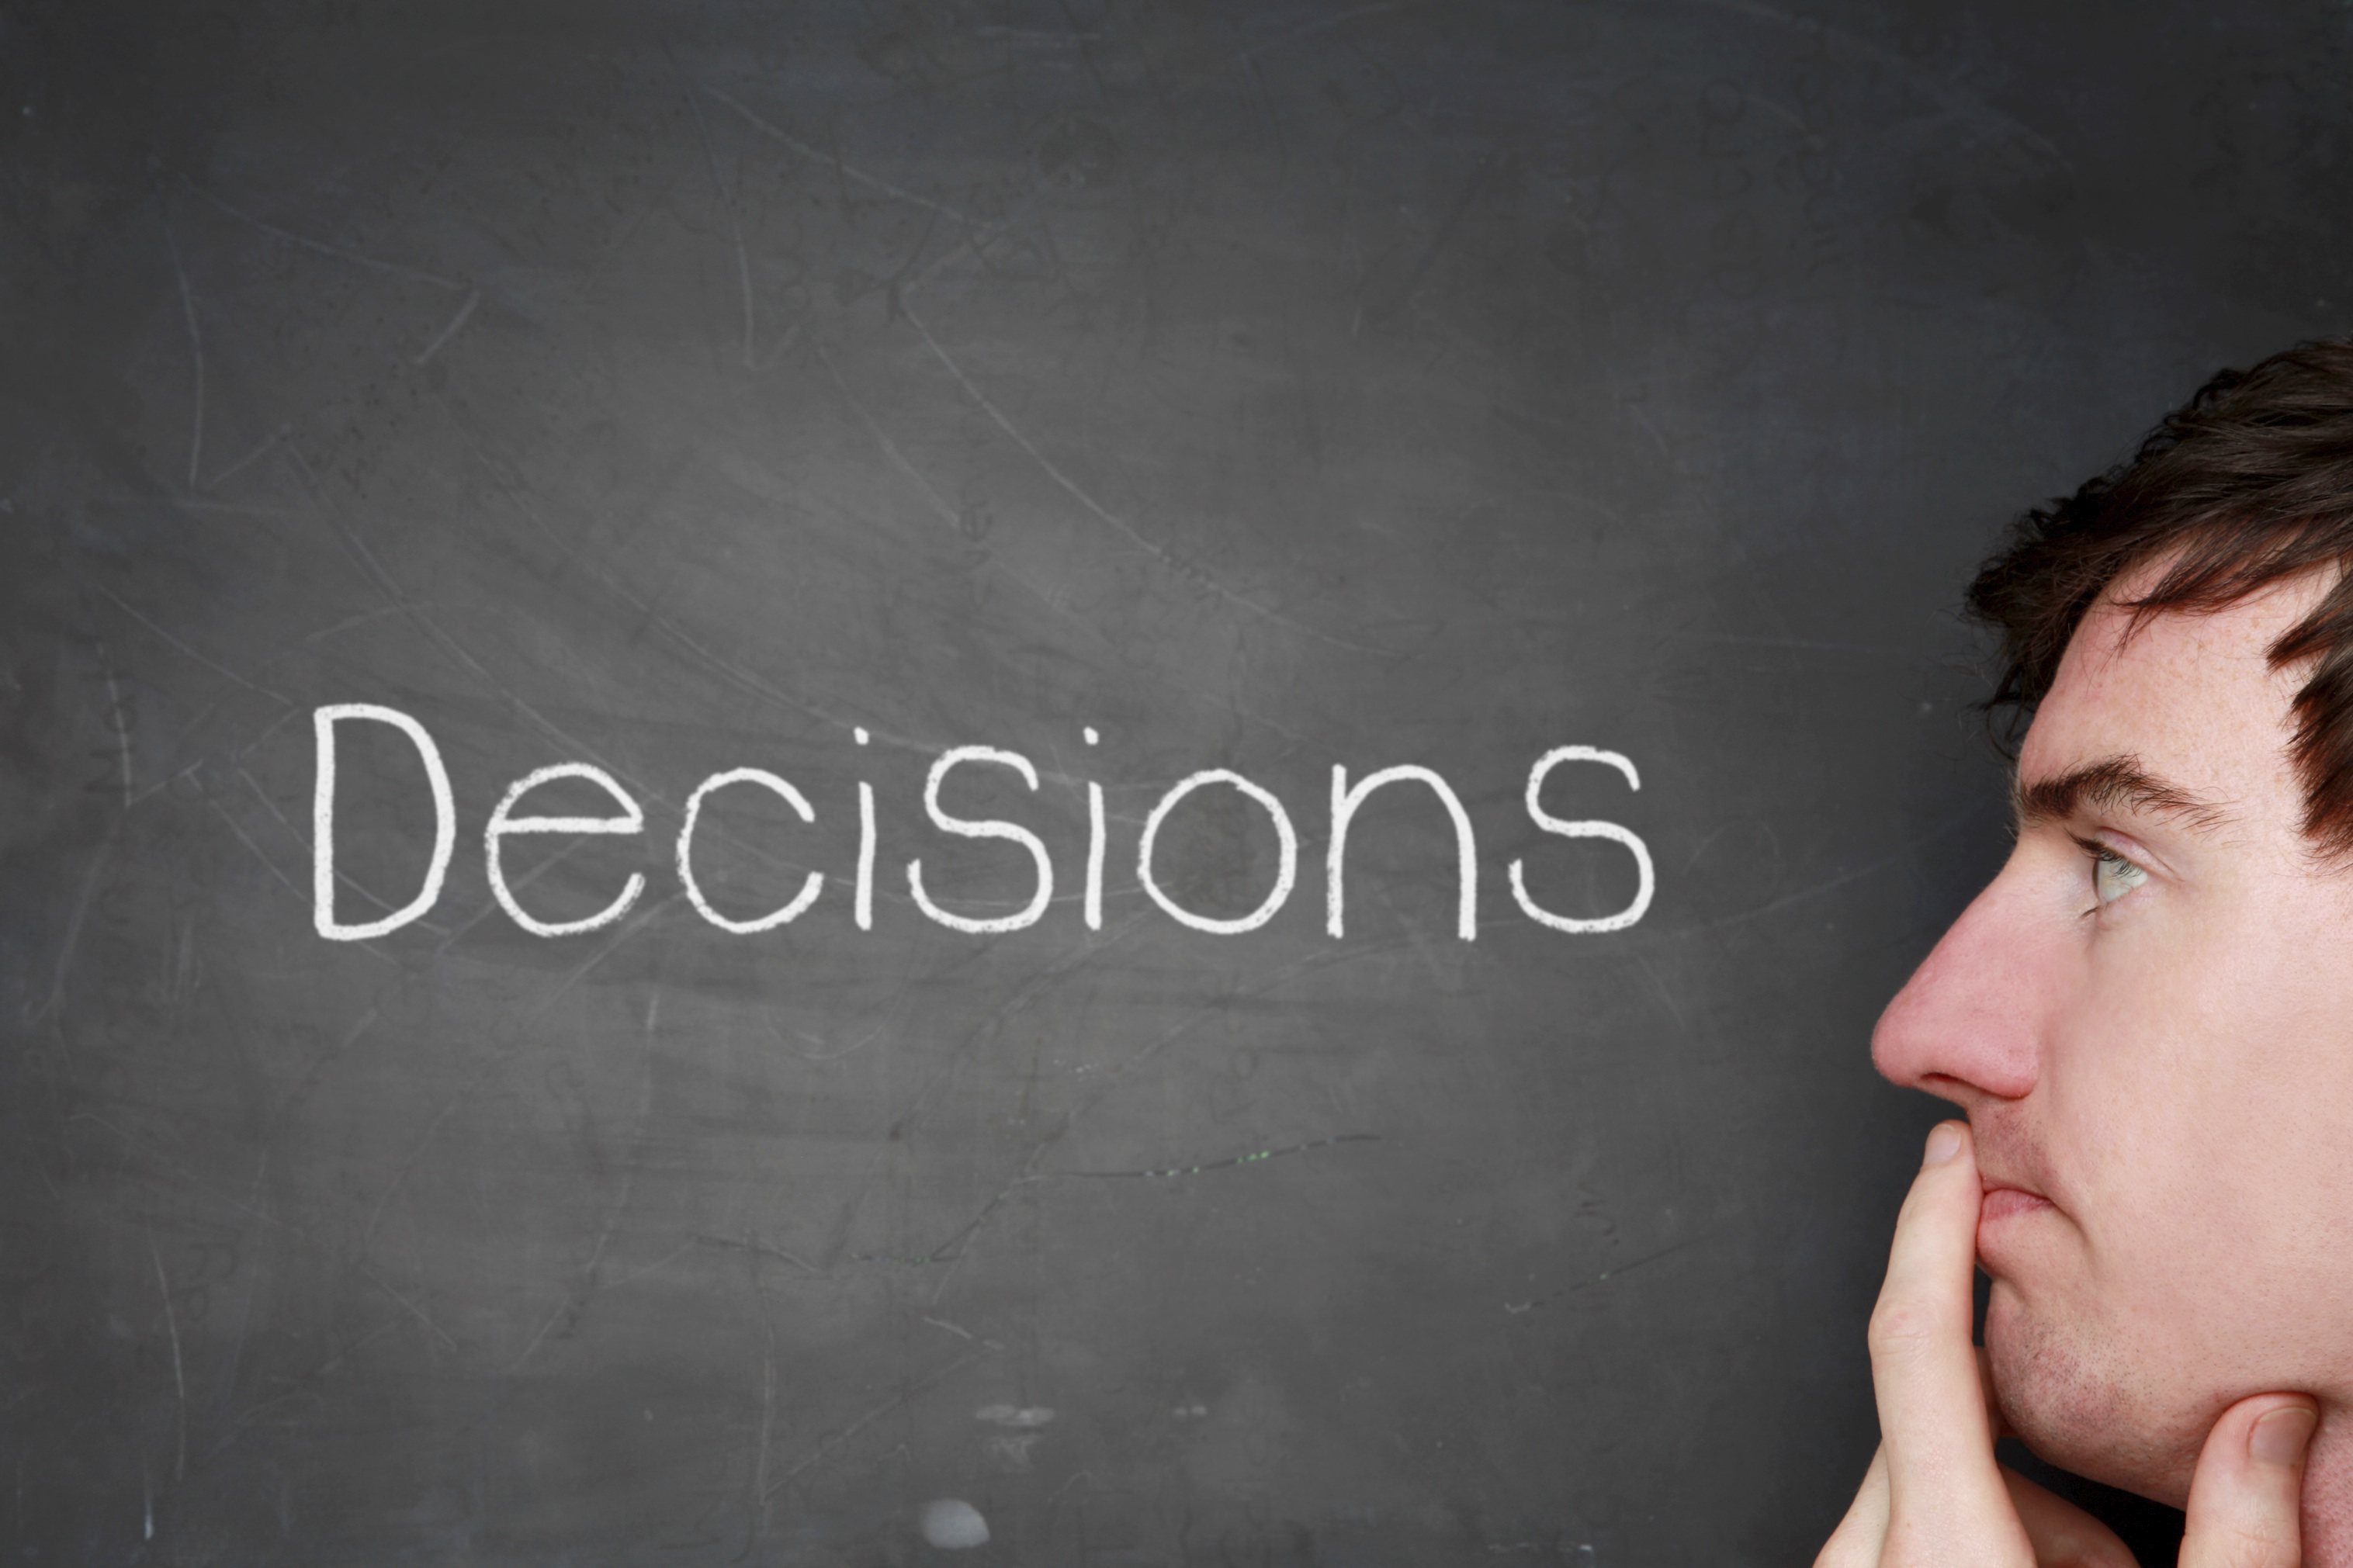 a reflection on peoples attempts to make good and wise decisions 6 tips for making better decisions mike myatt contributor i  as much as you may wish it wasn't so, when it comes to being a leader you're really only as good as your last decision.